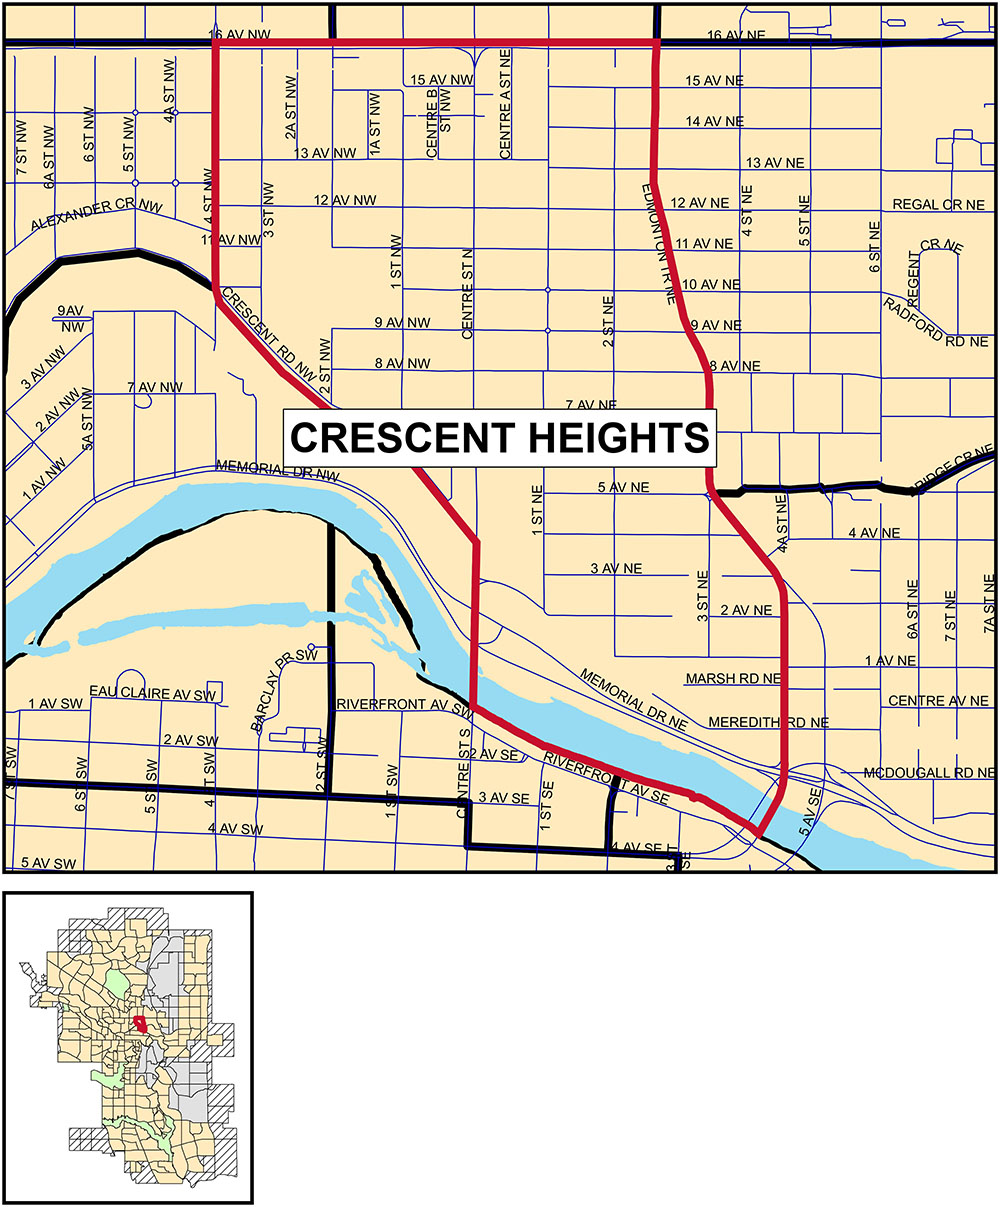 Crescent Heights community profile